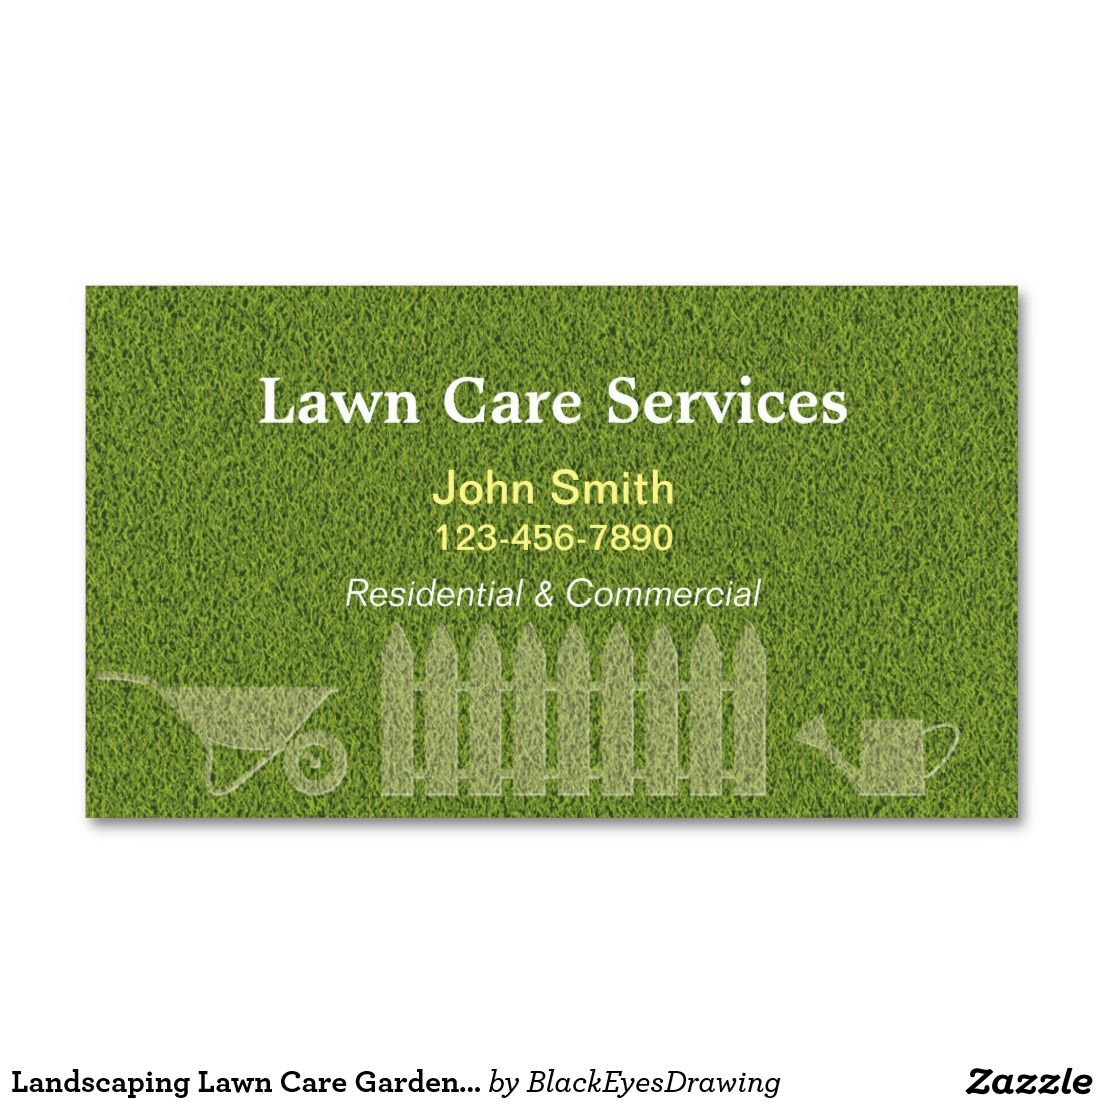 Landscaping Lawn Care Gardening Business Card | Business Cards ...